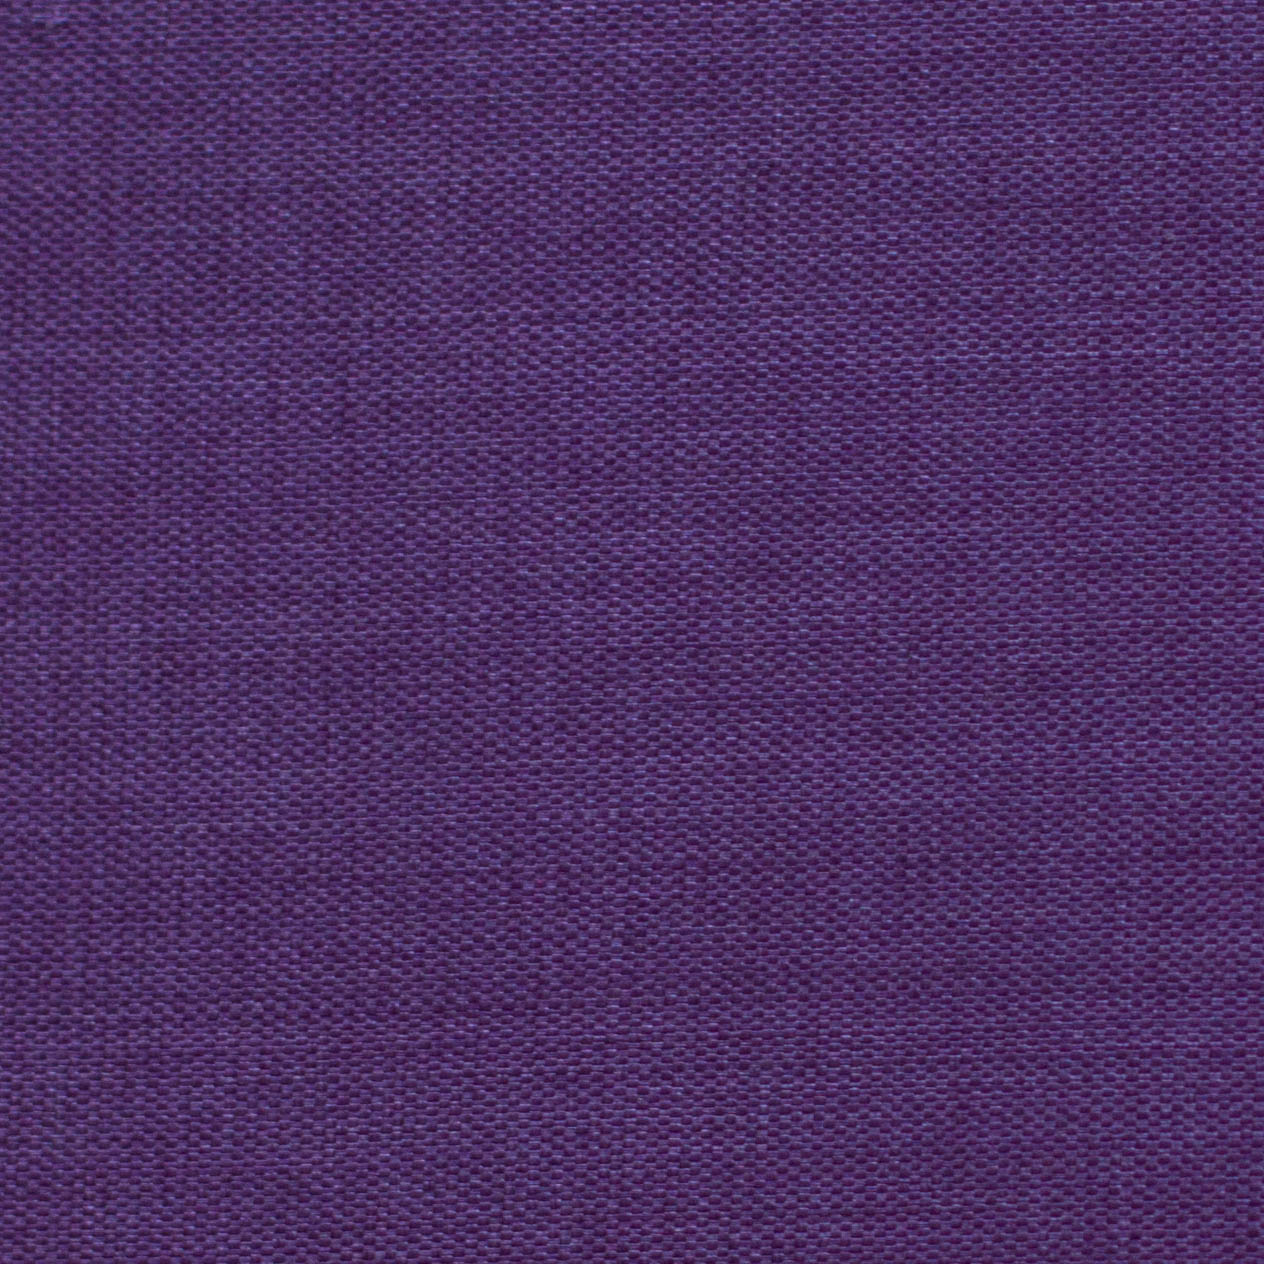 Natural silk - purple - SN 166